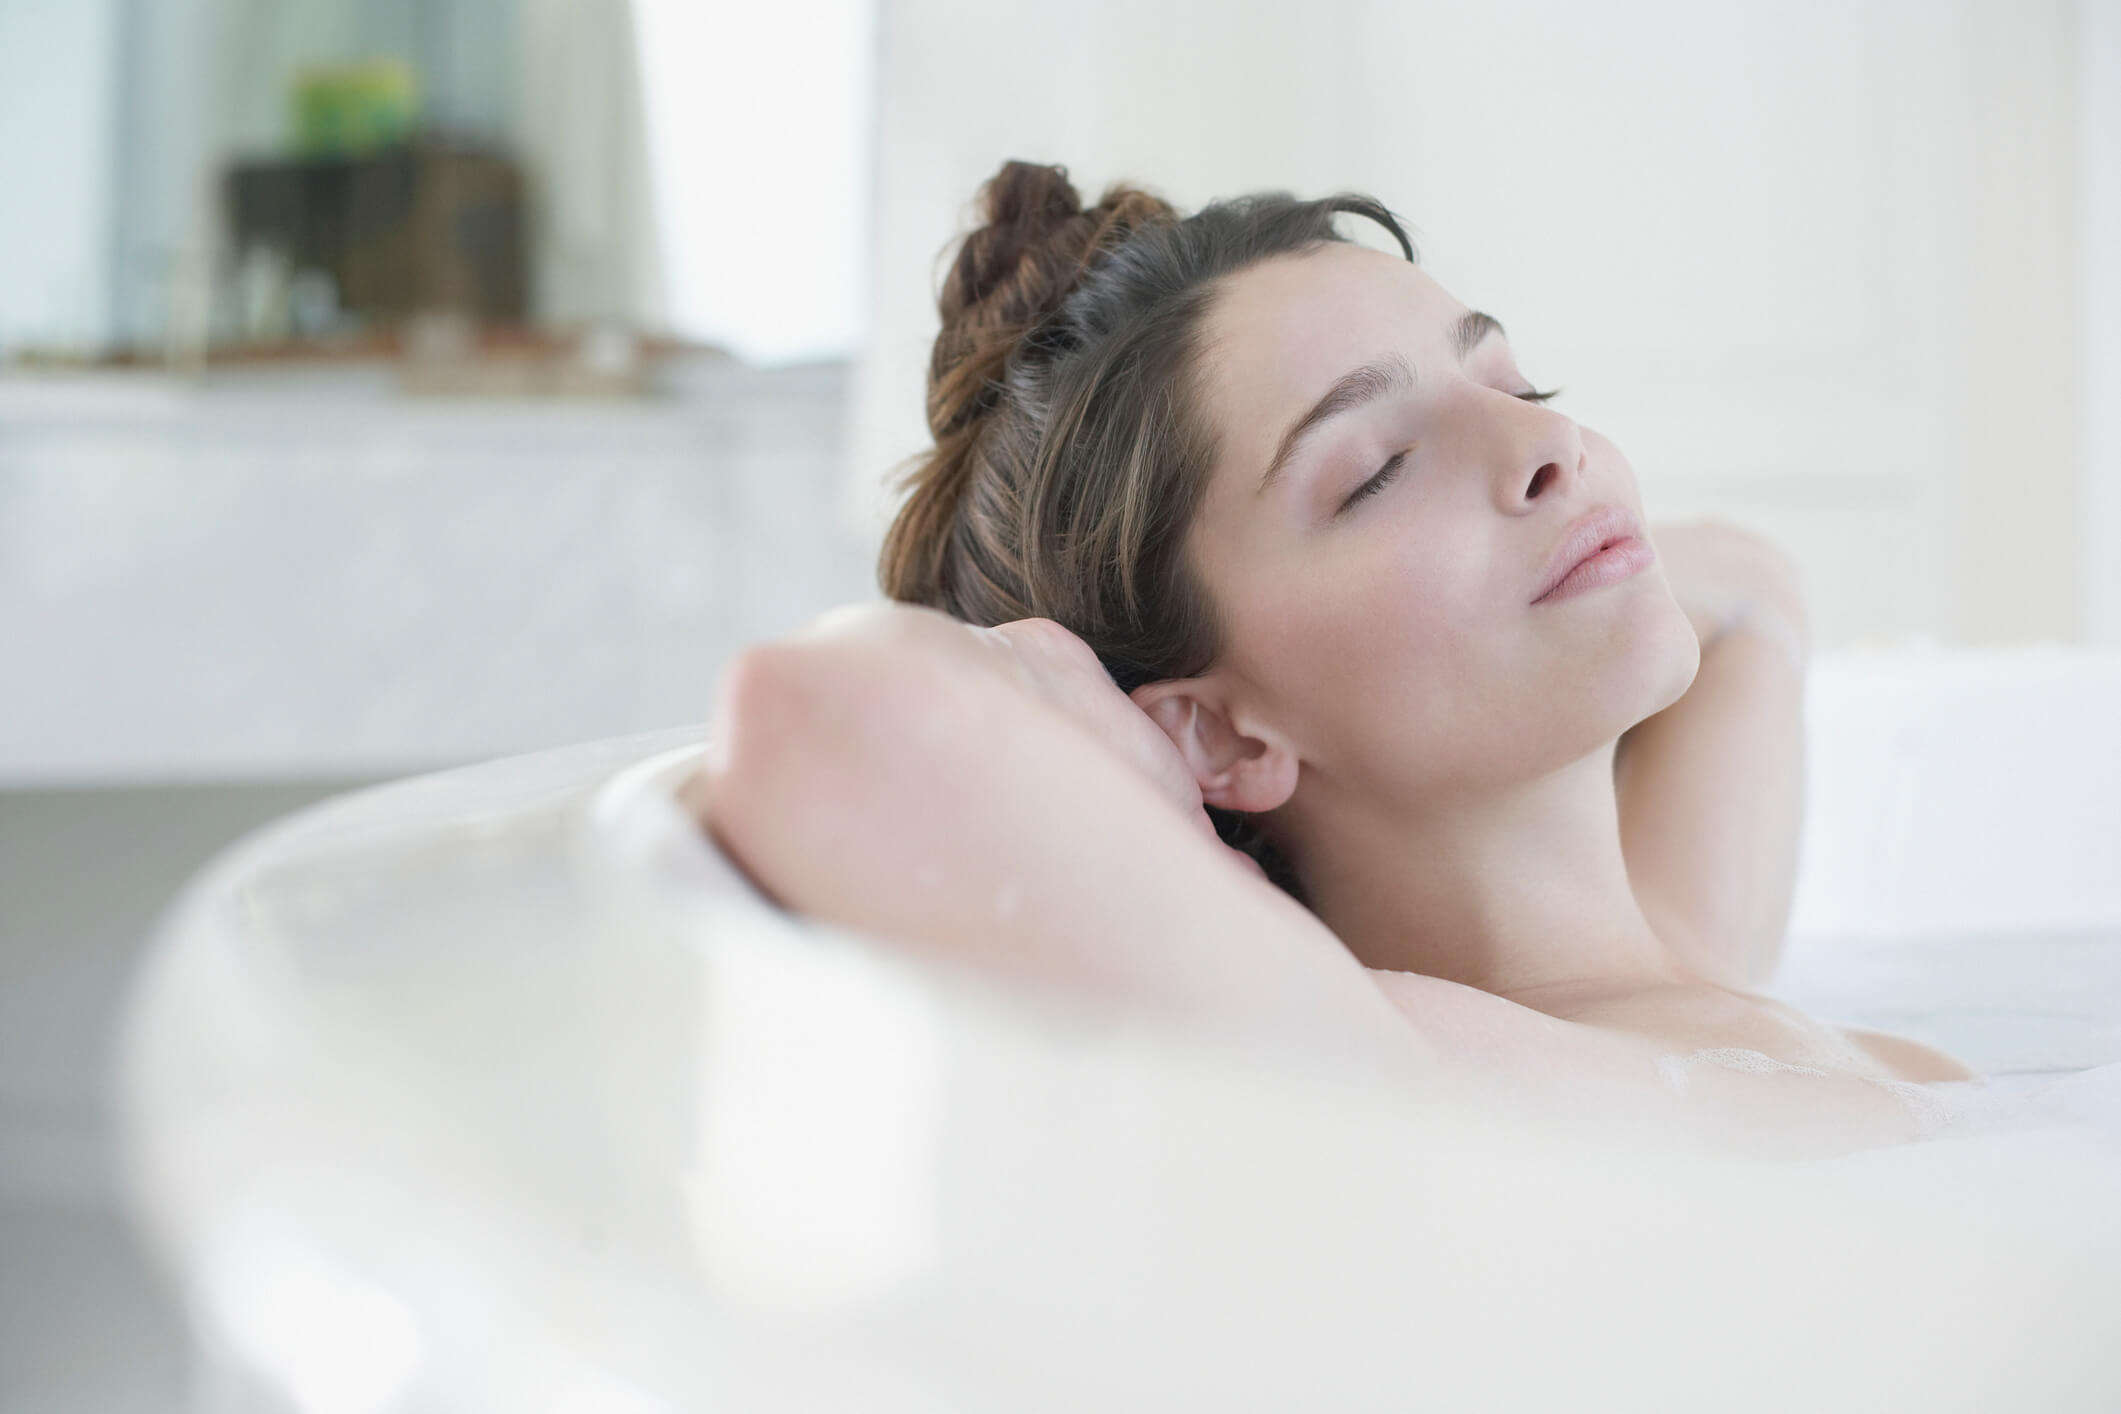 A woman relaxing in a bathtub